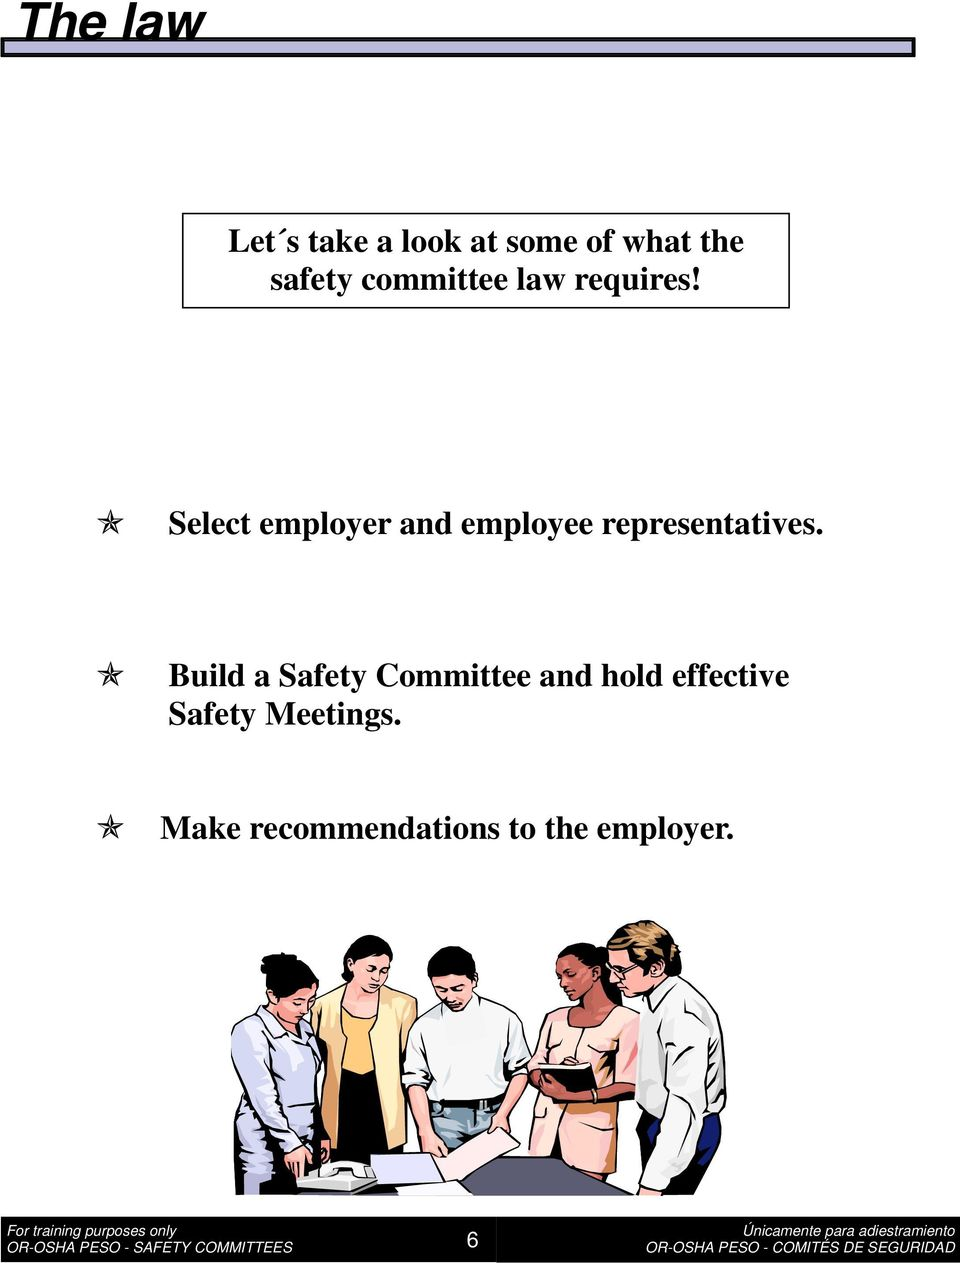 Select employer and employee representatives.